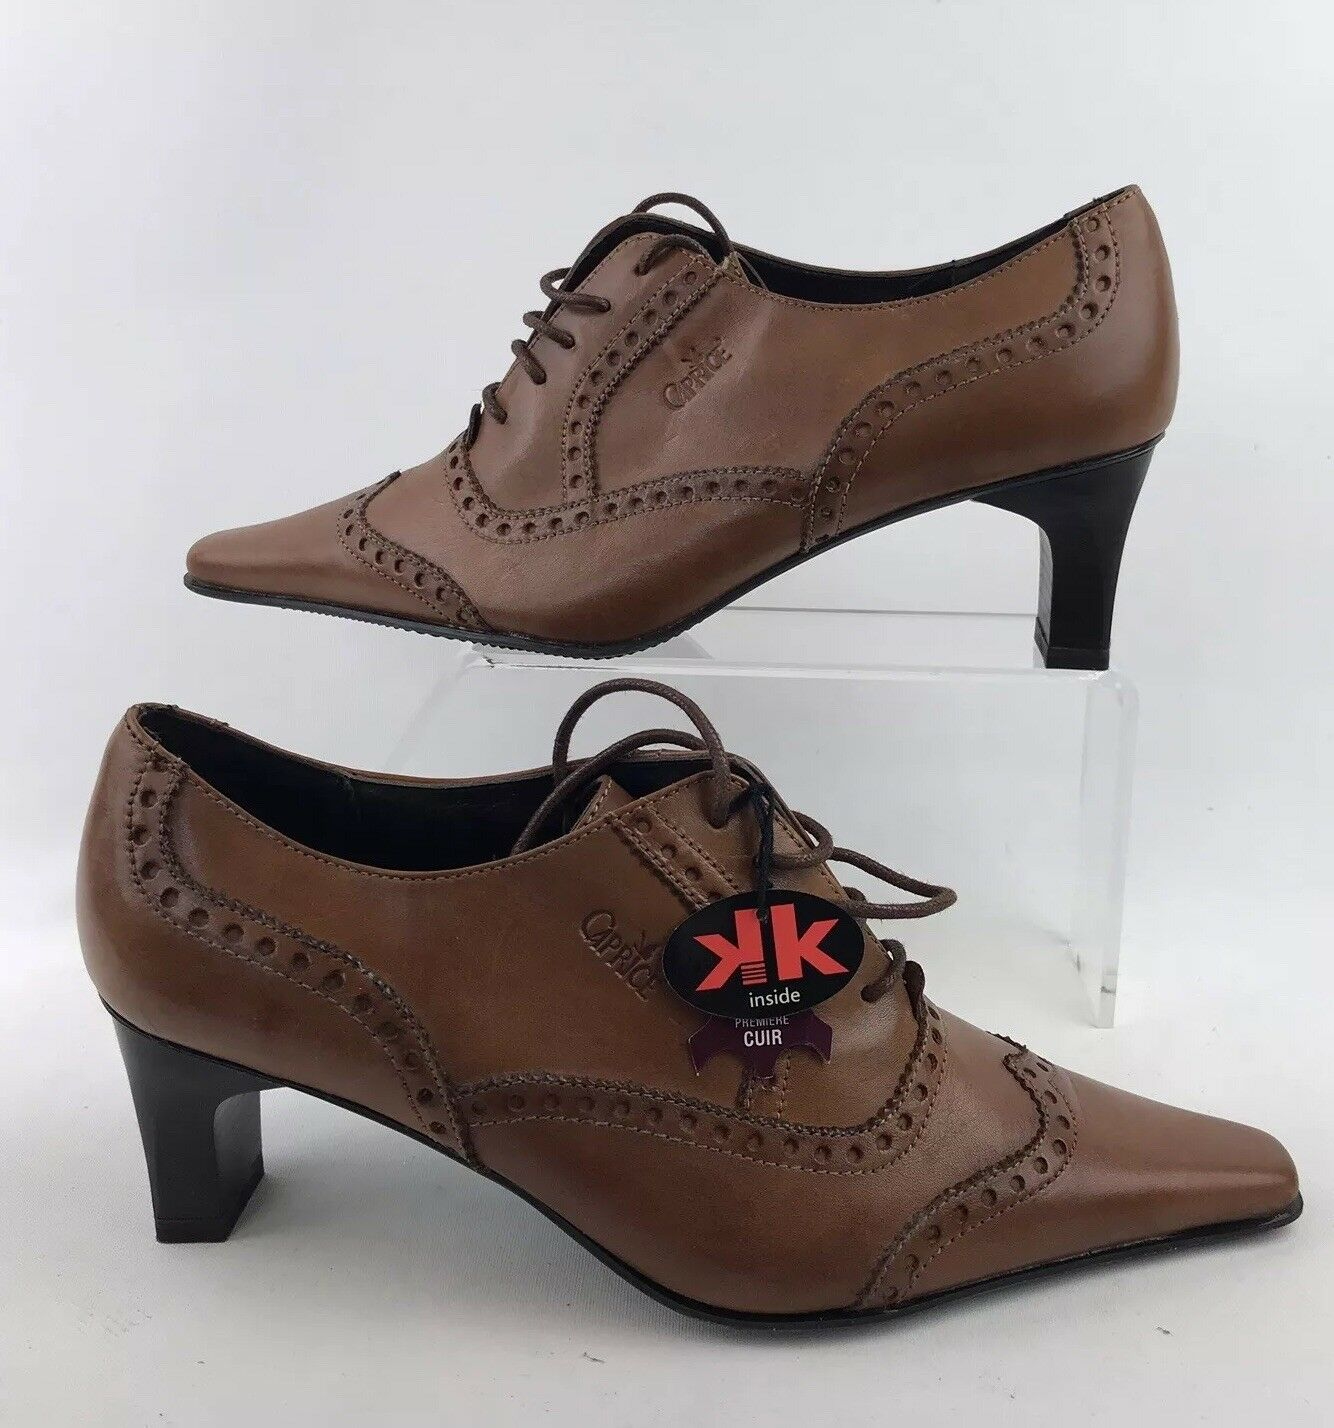 CAPRICE Taille UK 6 marron Tan Brogues Style Heel chaussures Anti Shock BNIB